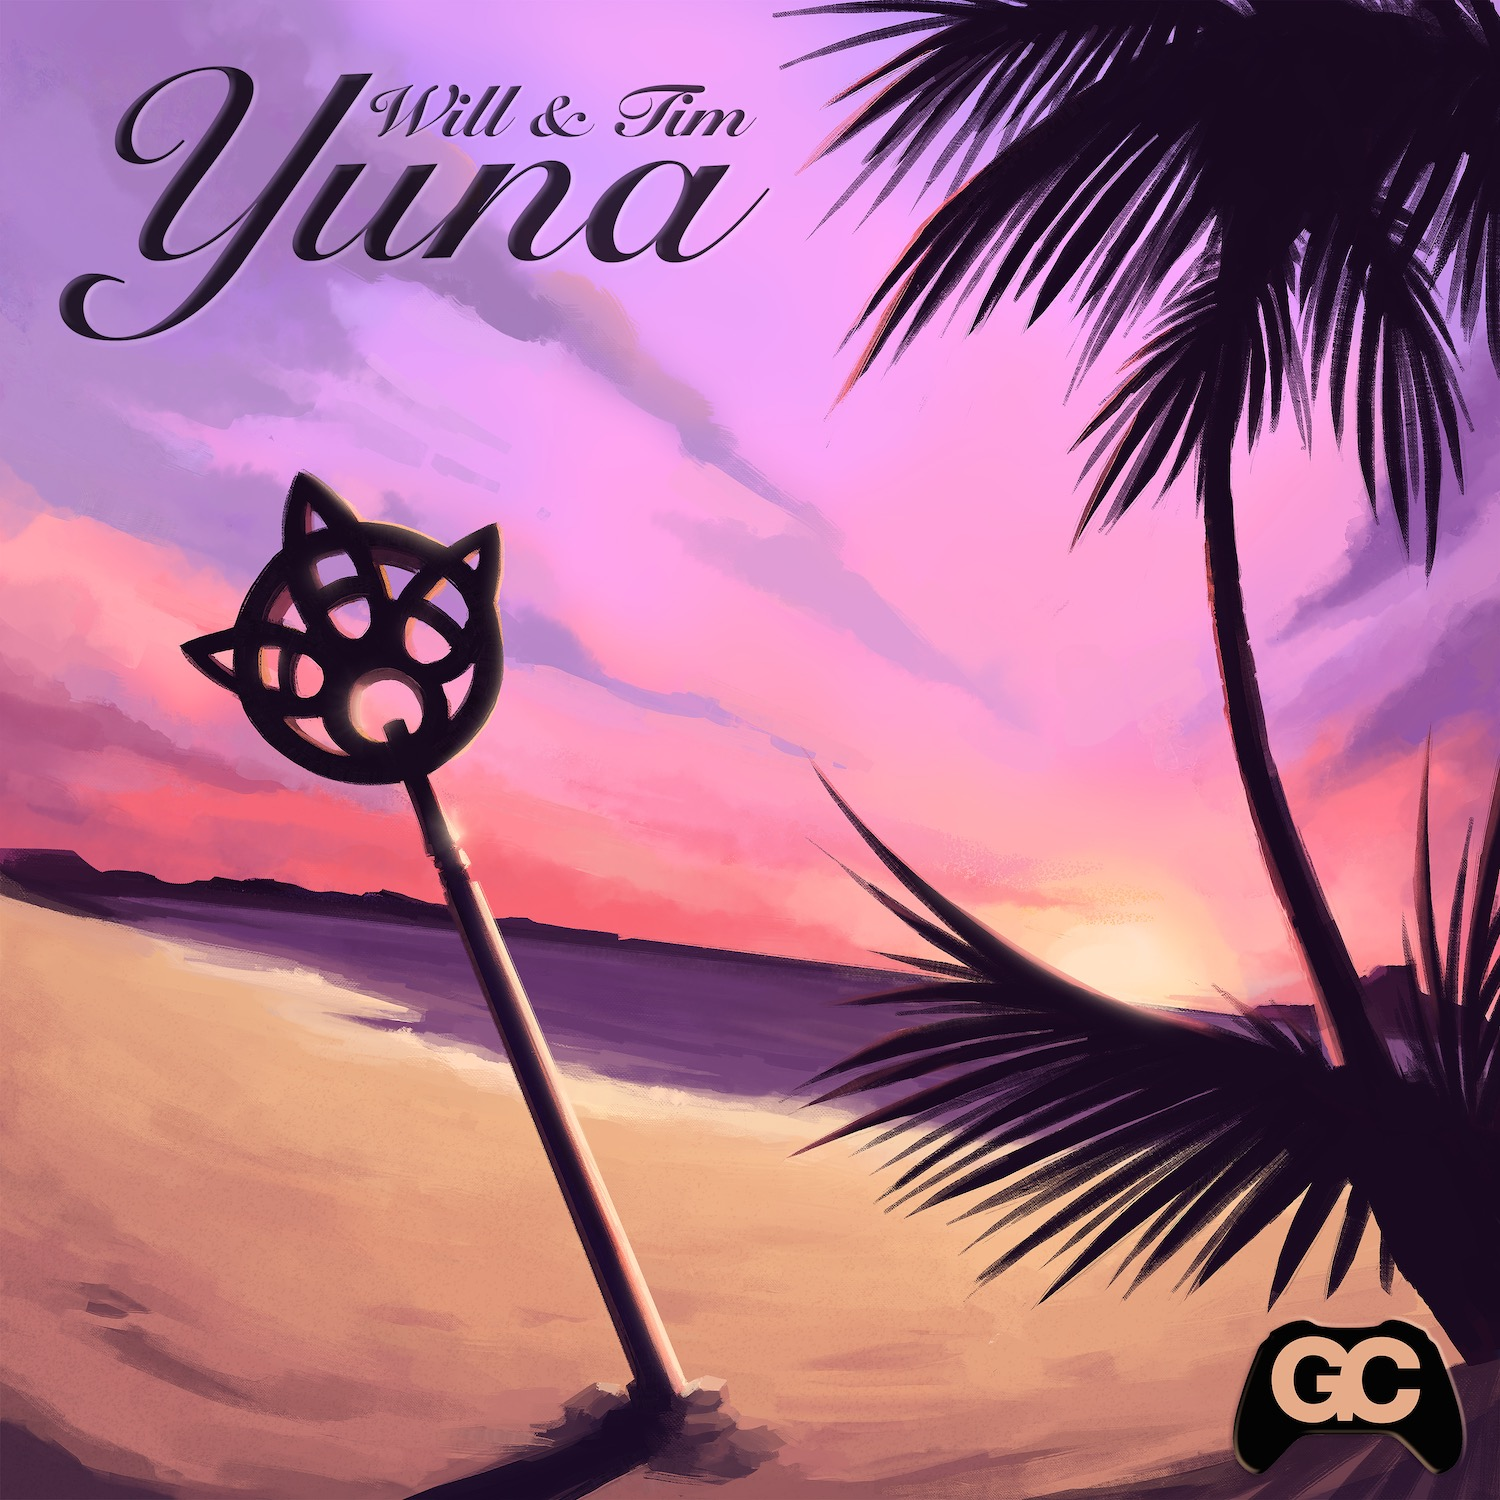 Yuna (Tropical House Remix) – Will & Tim